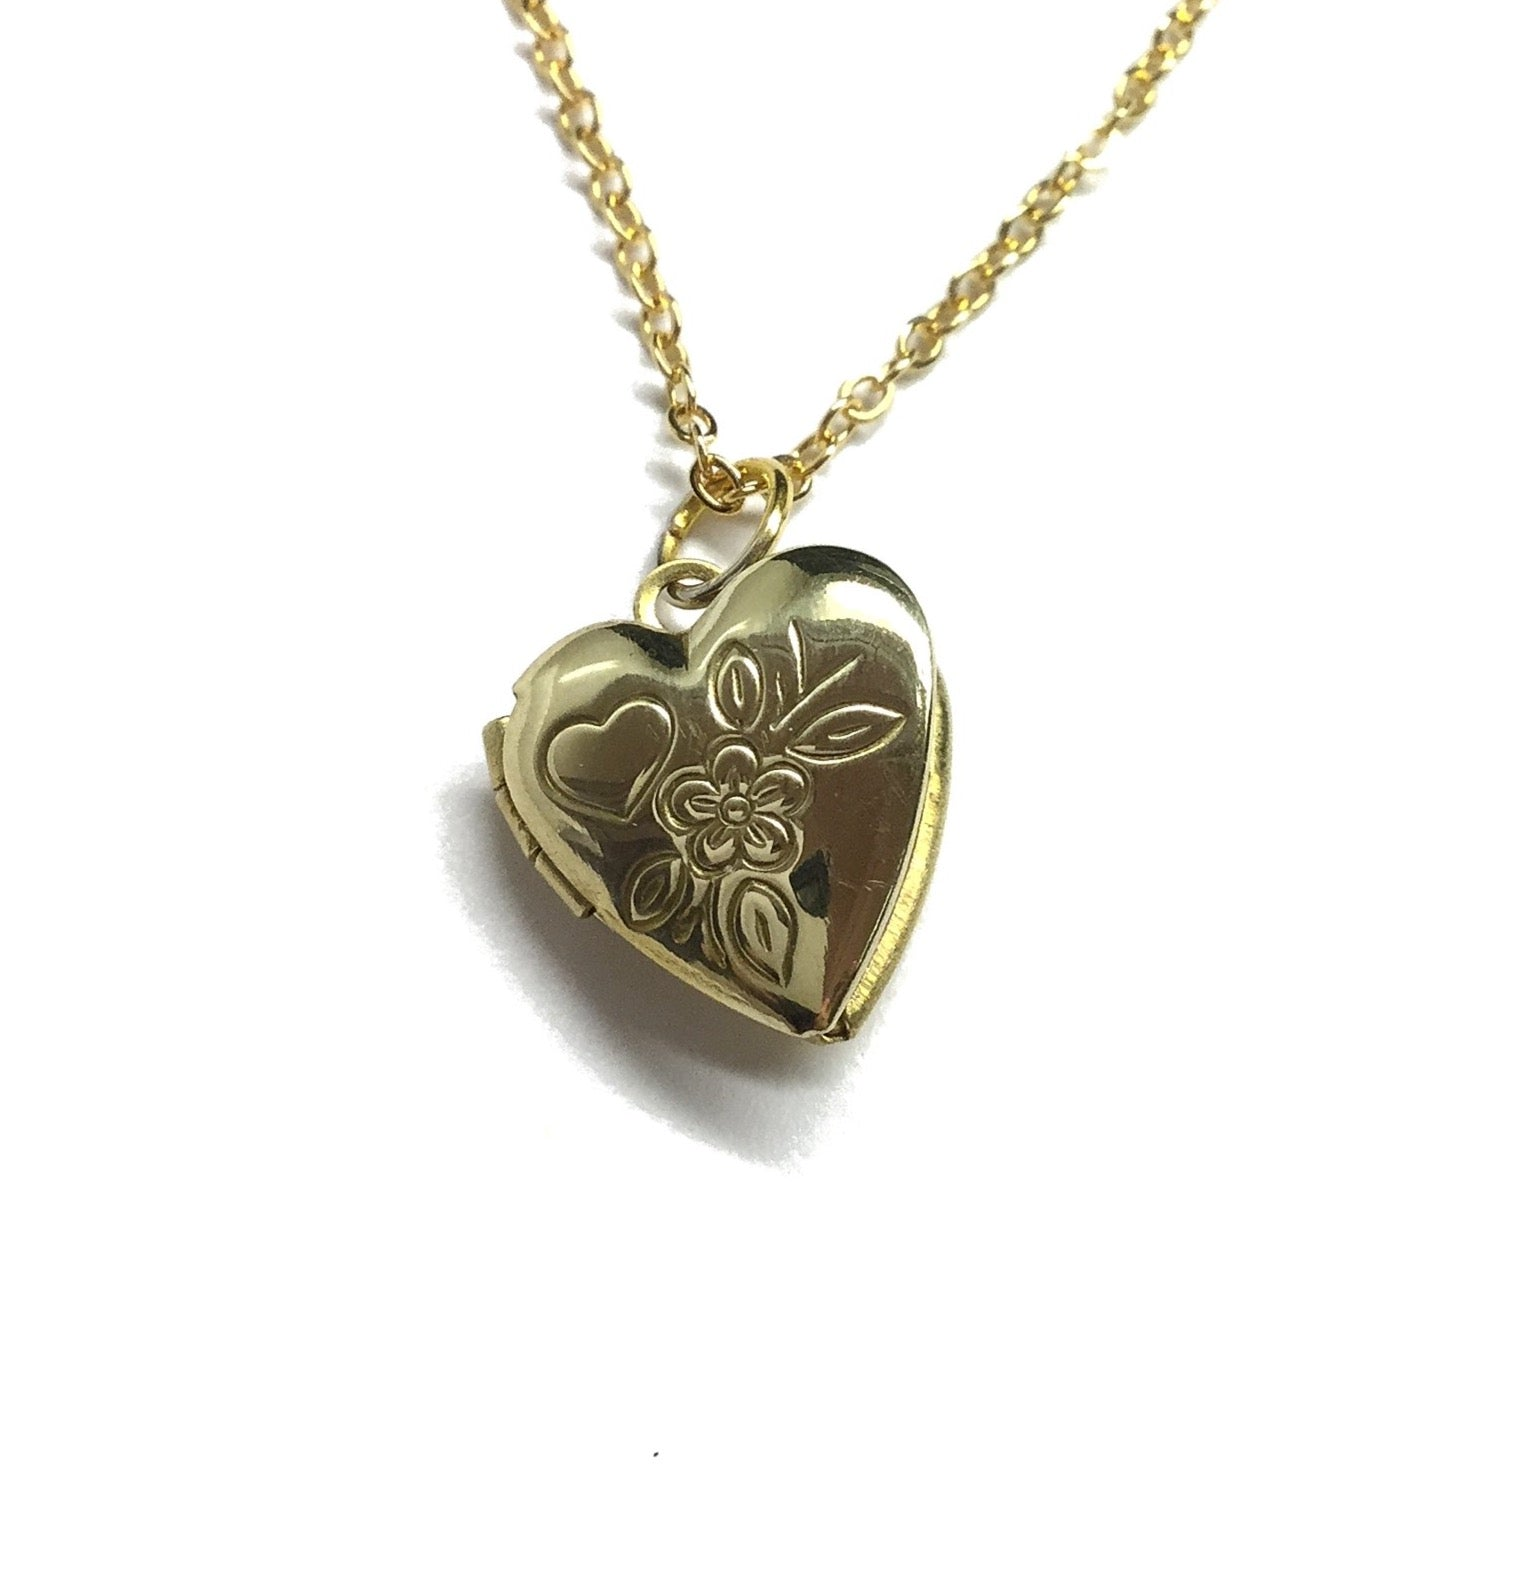 small keepsake heart locket necklace